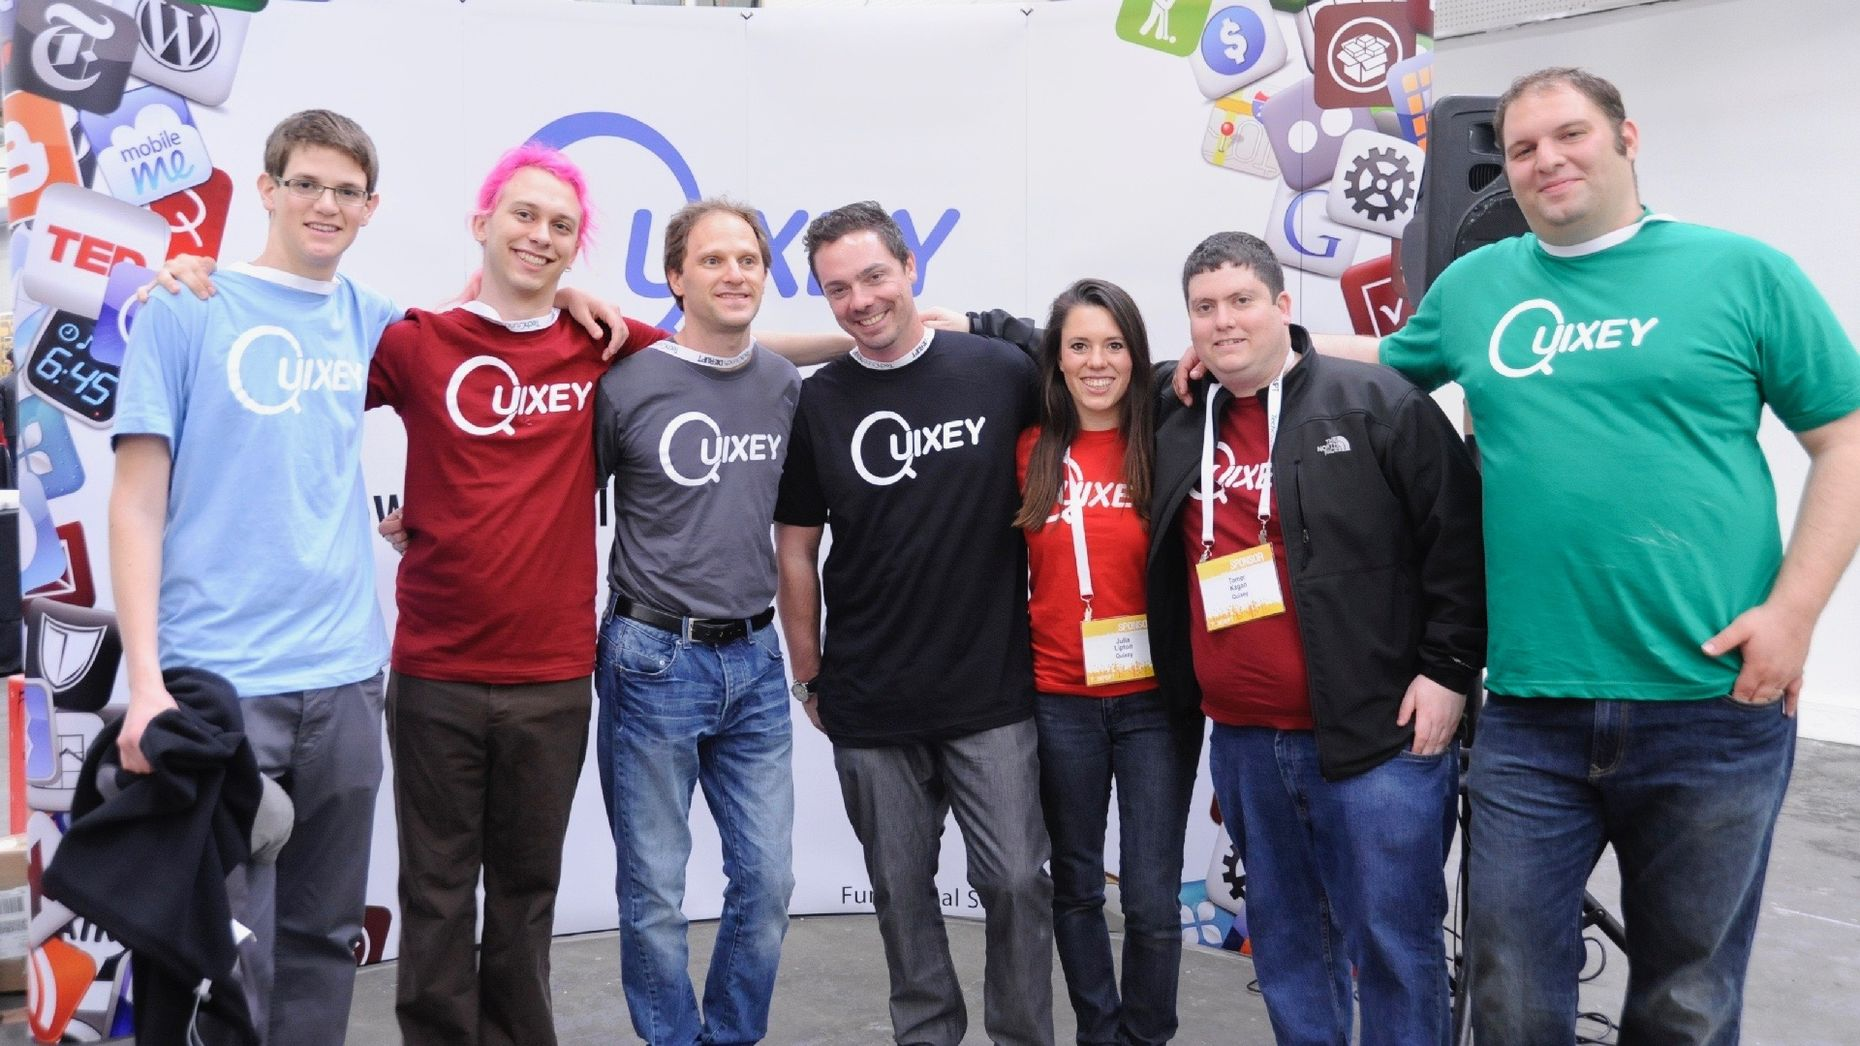 Former Quixey co-founder CEO Tomer Kagan, second from right. Photo by Flickr/TechCrunch.